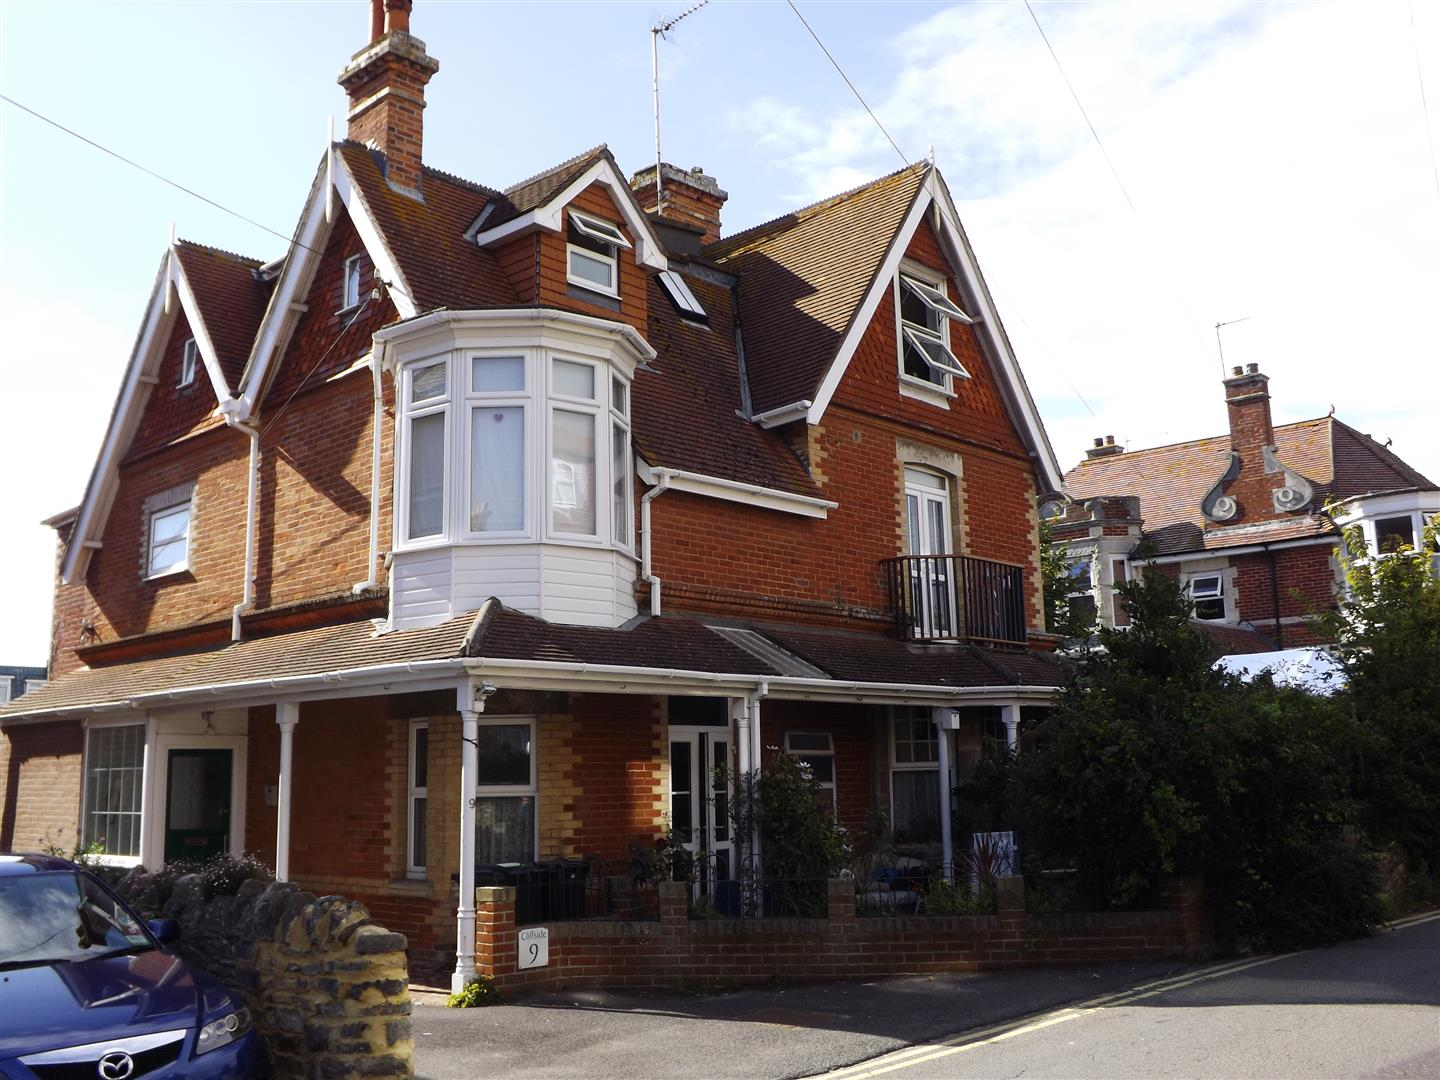 2 Bedrooms Flat for sale in Ulwell Road, Swanage